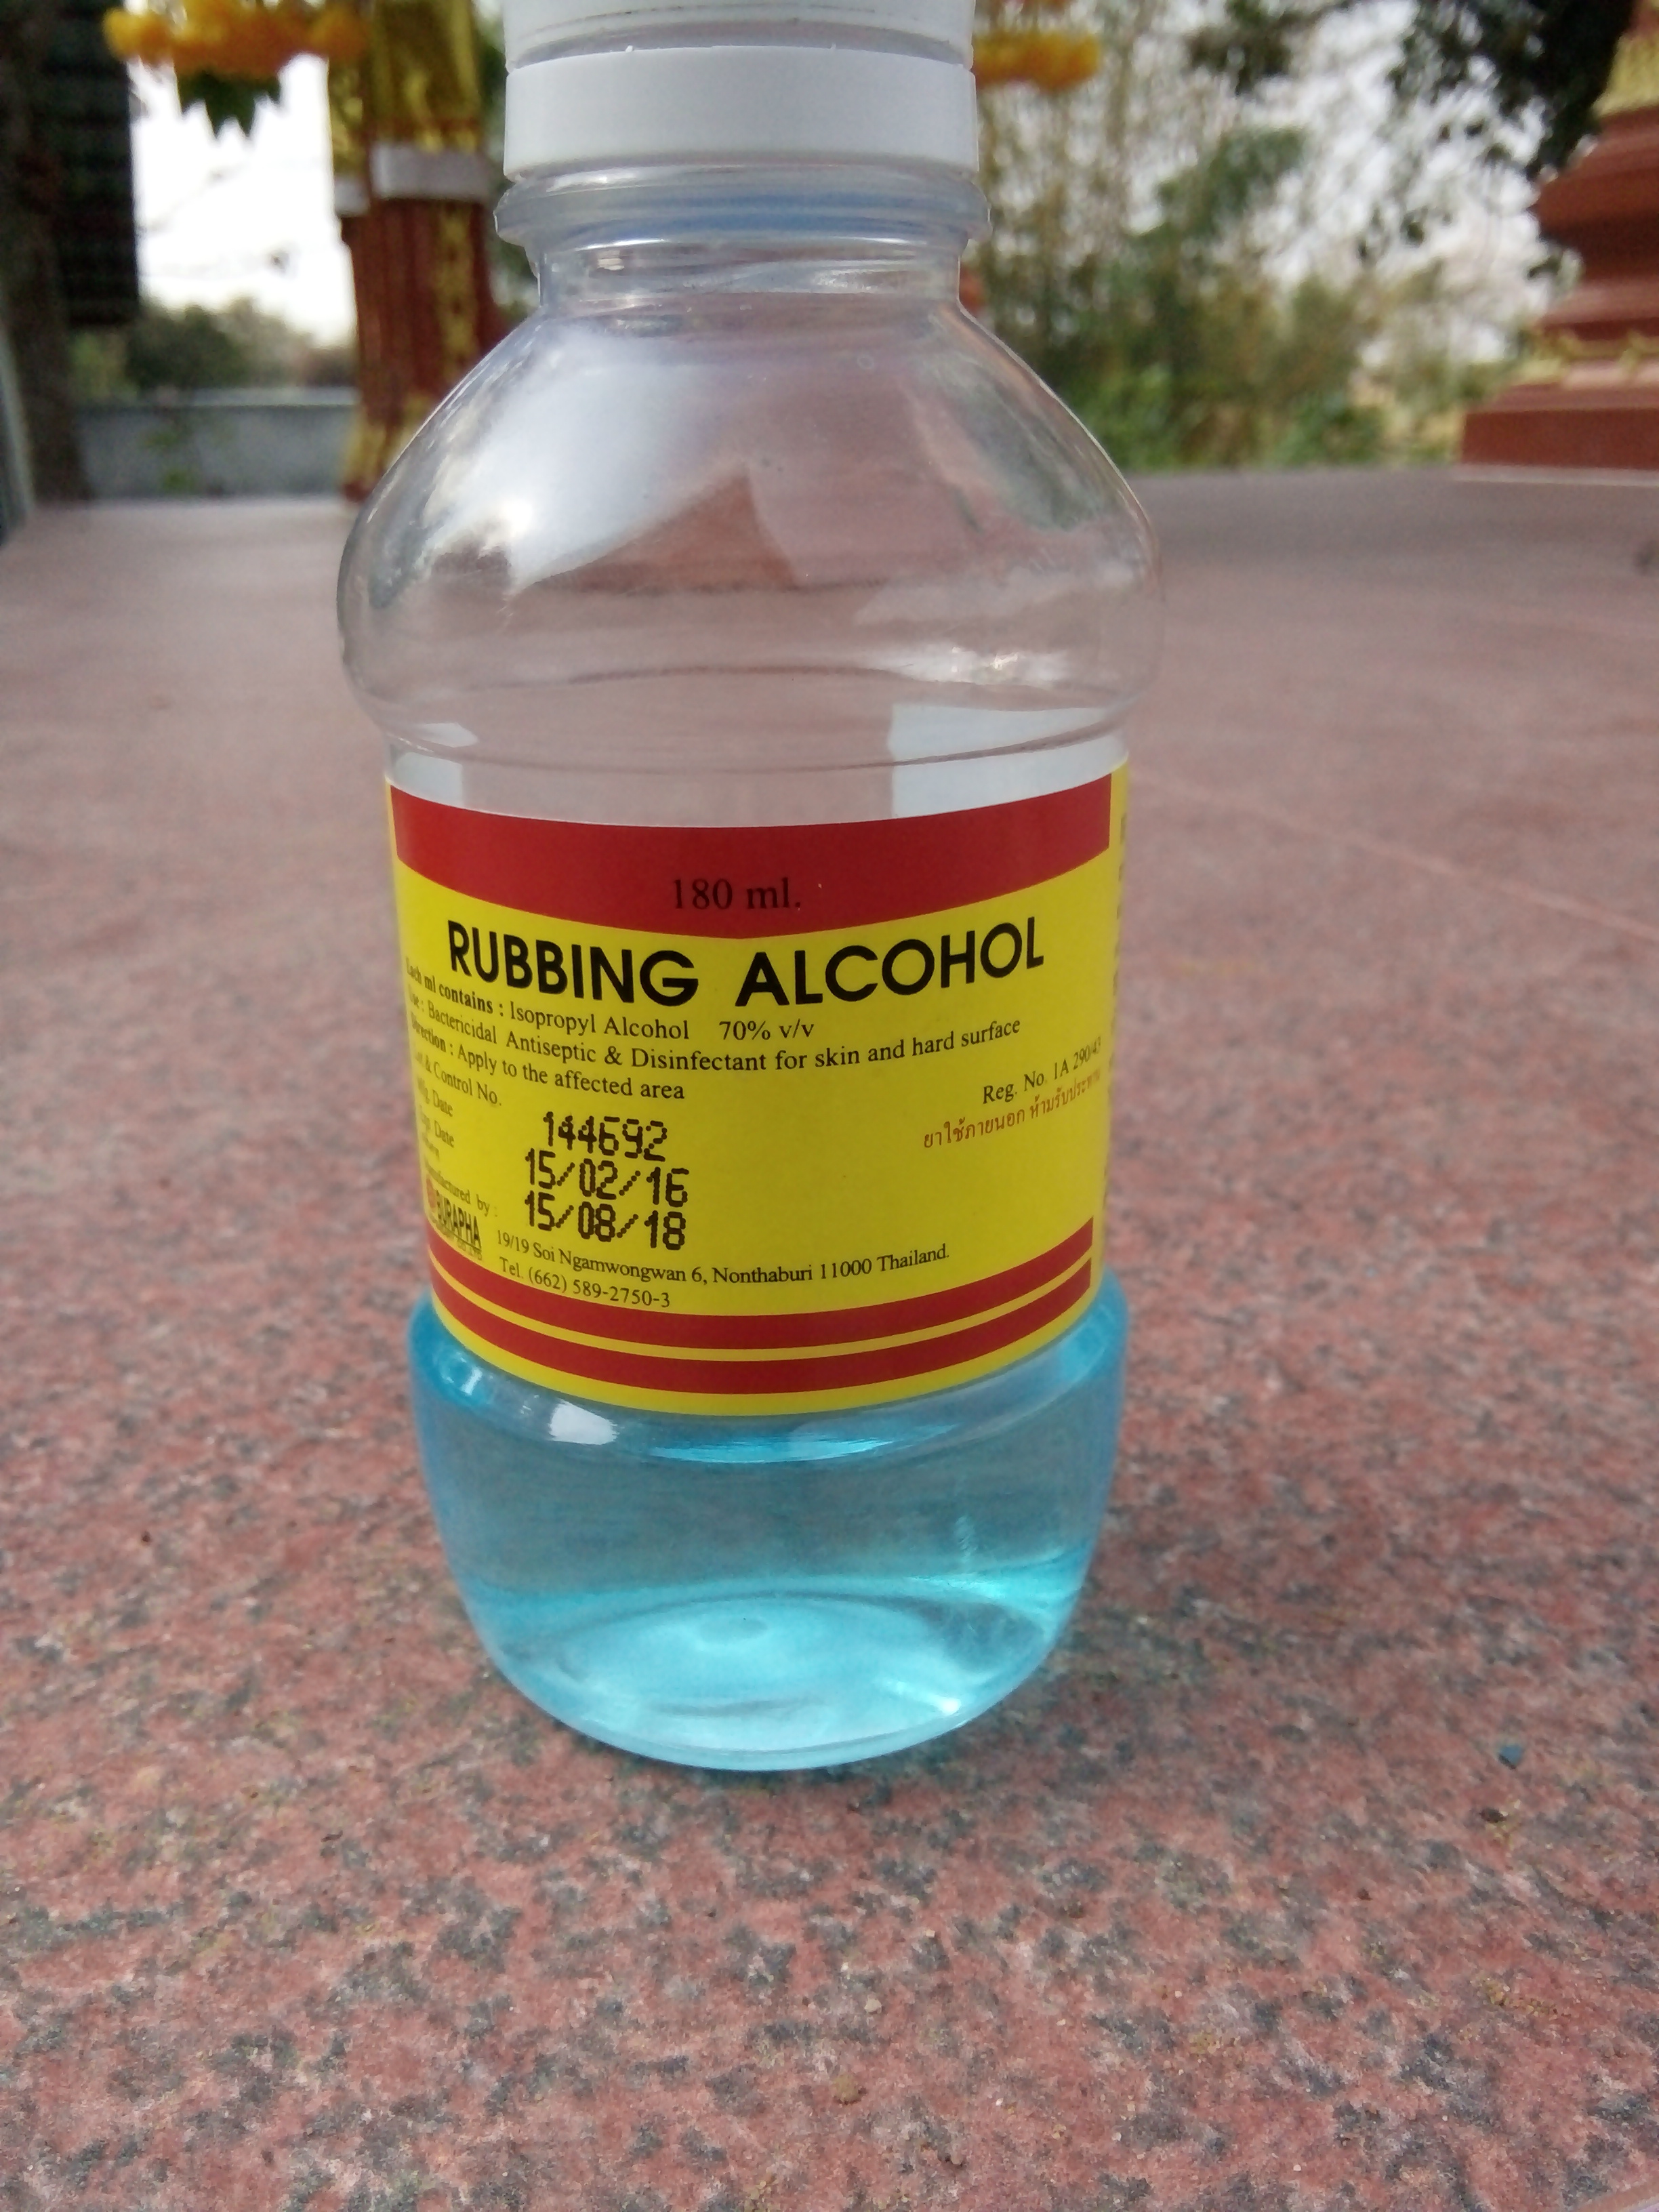 Where can I buy pure alcohol for cleaning test instruments